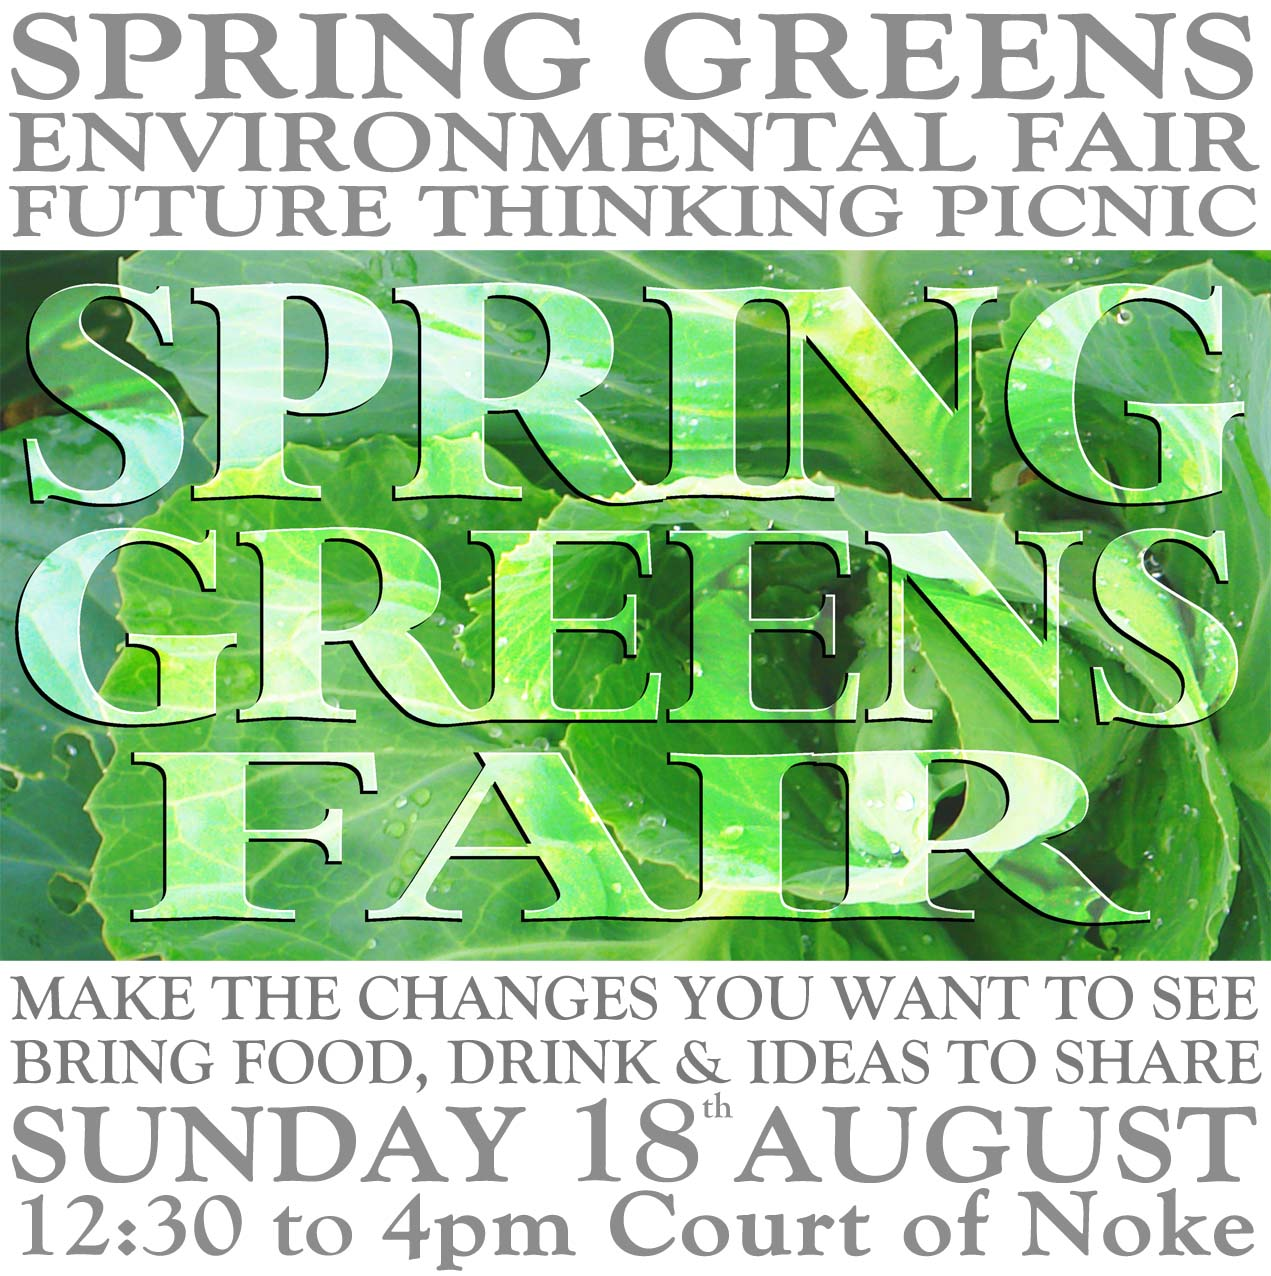 A Future Thinking Picnic for Spring Greens